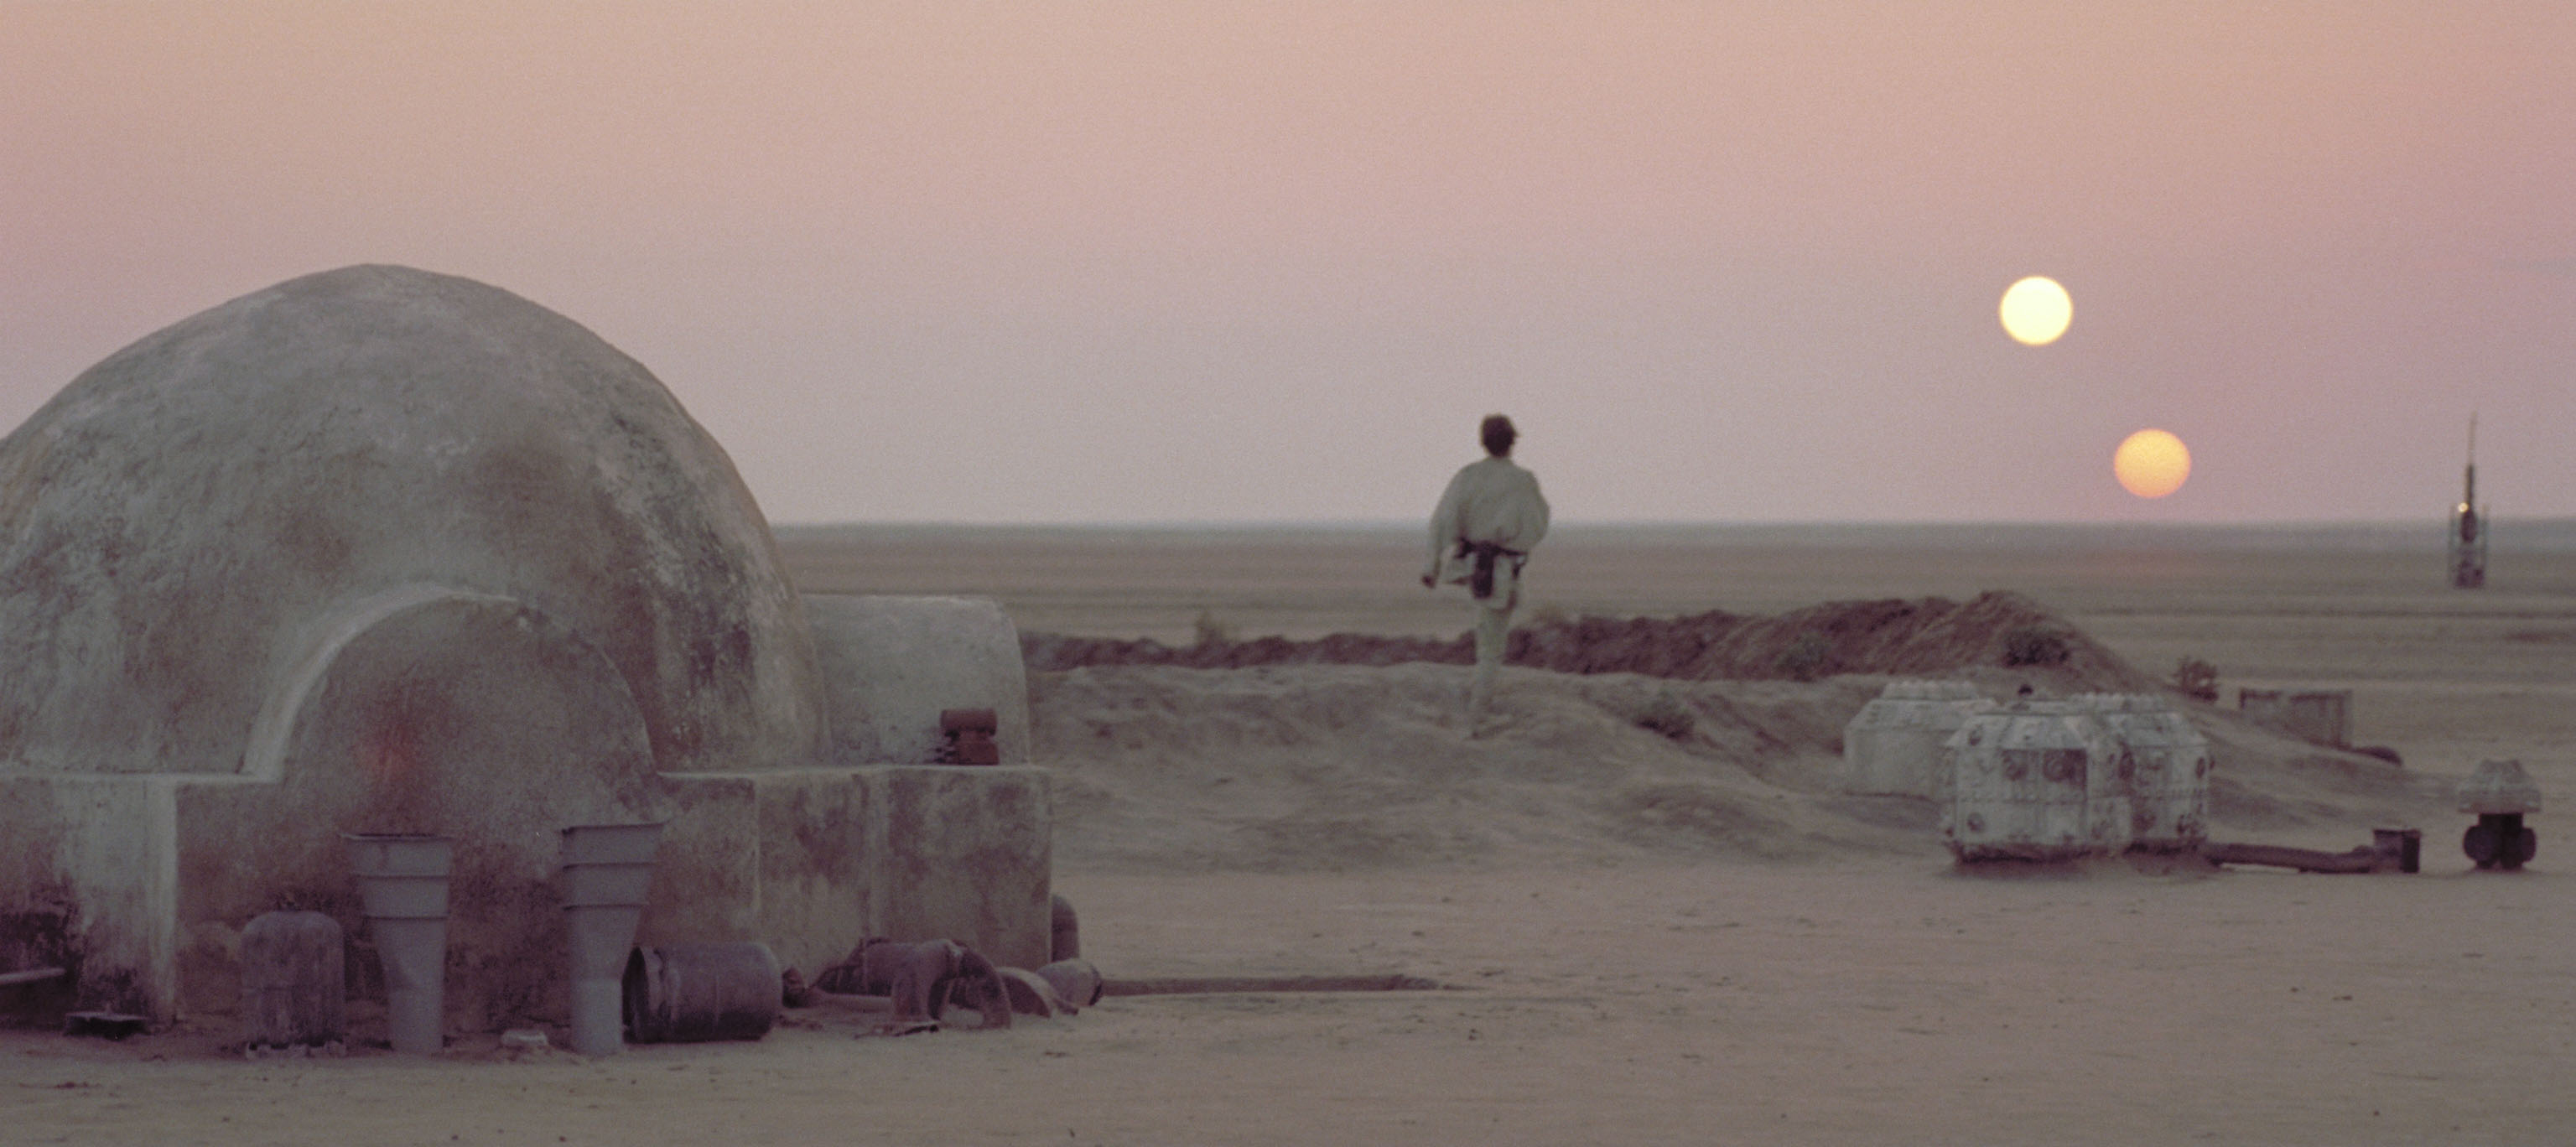 Tatooine and its double sunset